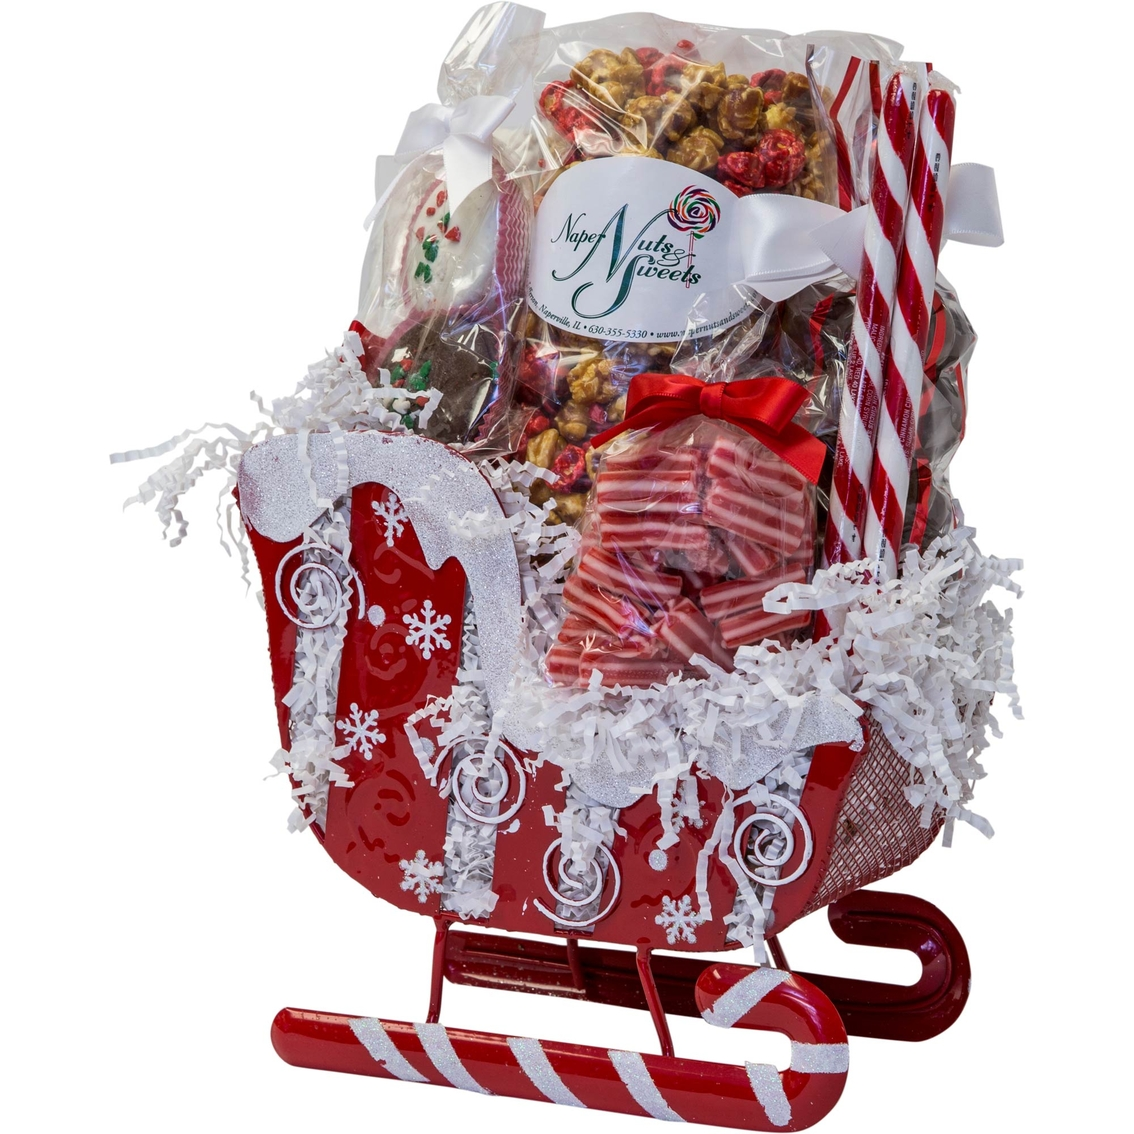 Naper Nuts And Sweets Red Swirl Snowflake Sleigh